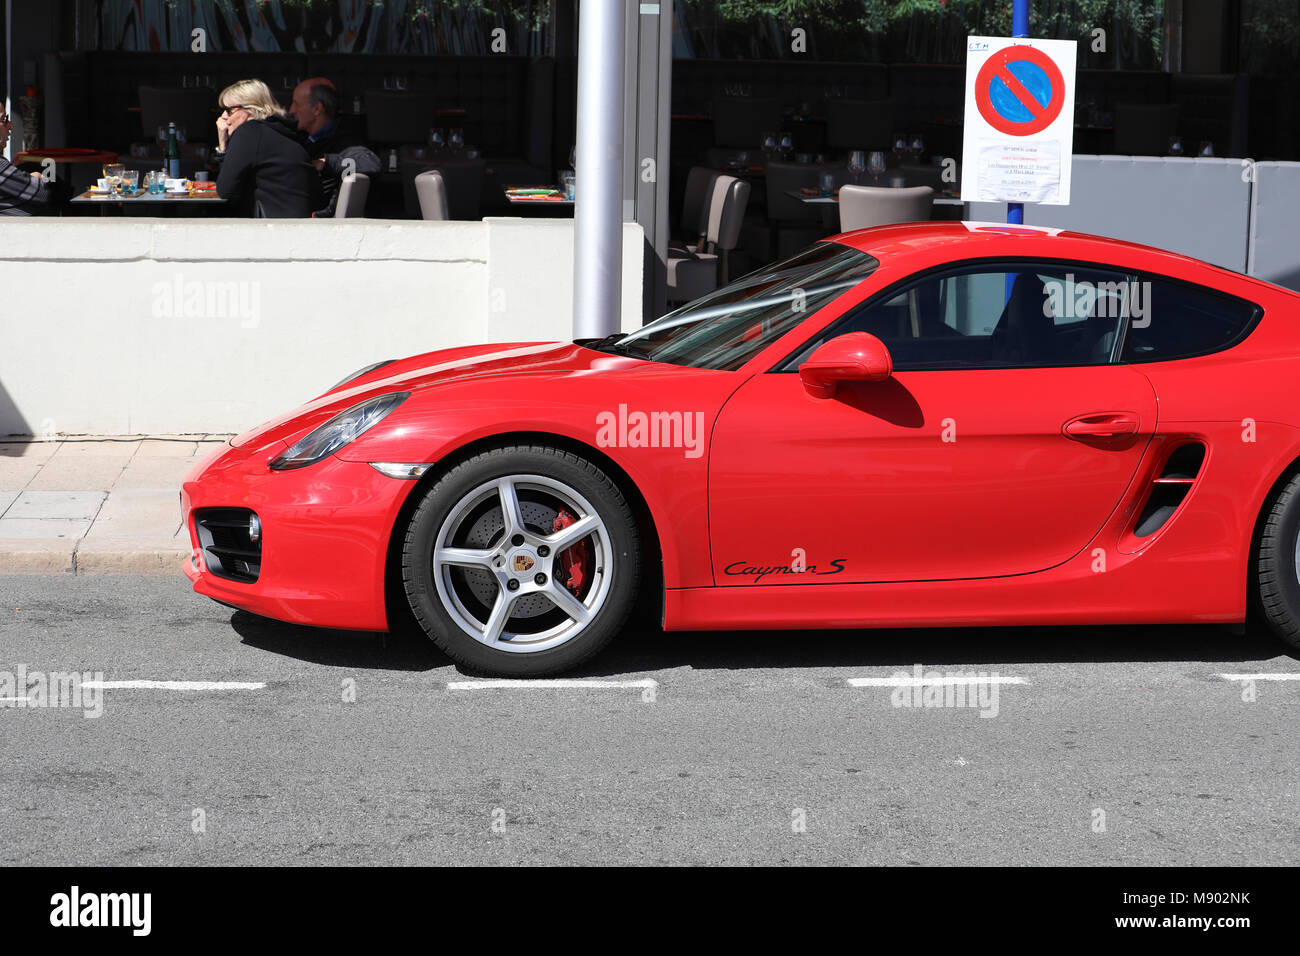 Menton, France - March 19, 2018: Luxury Red Porsche 718 Cayman S Badly Parked Car In The Street Of Menton On The - Stock Image